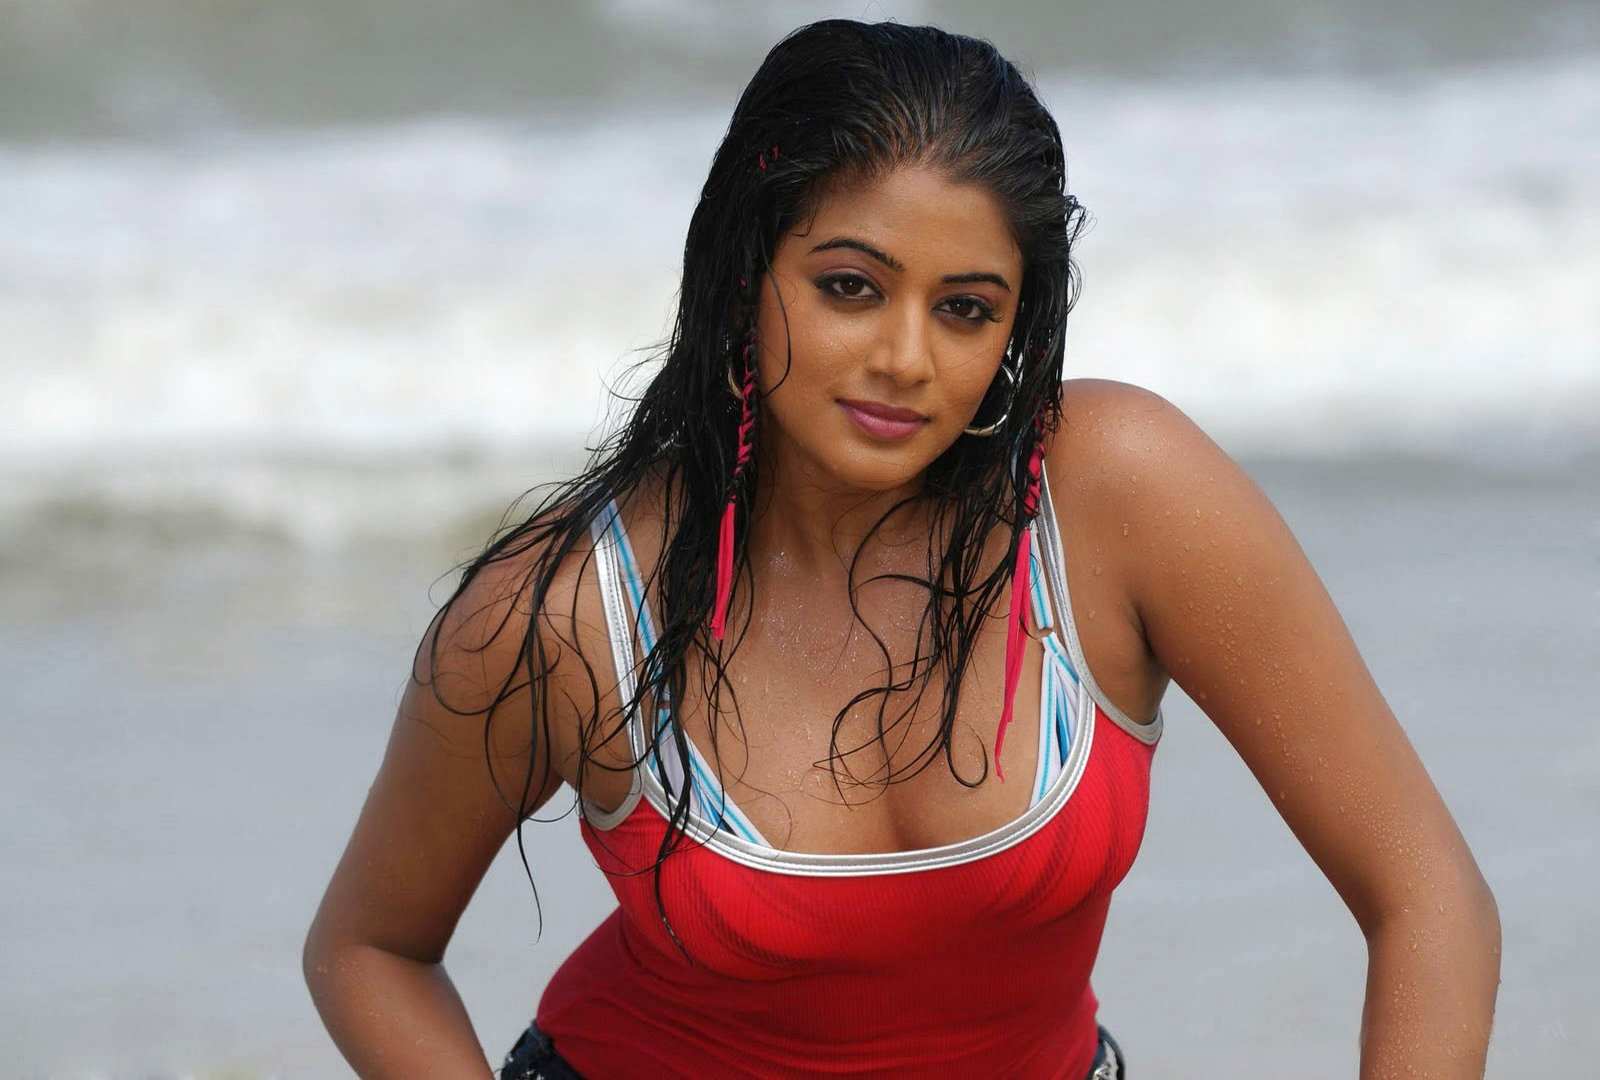 Priyamani funking, mature black women videos